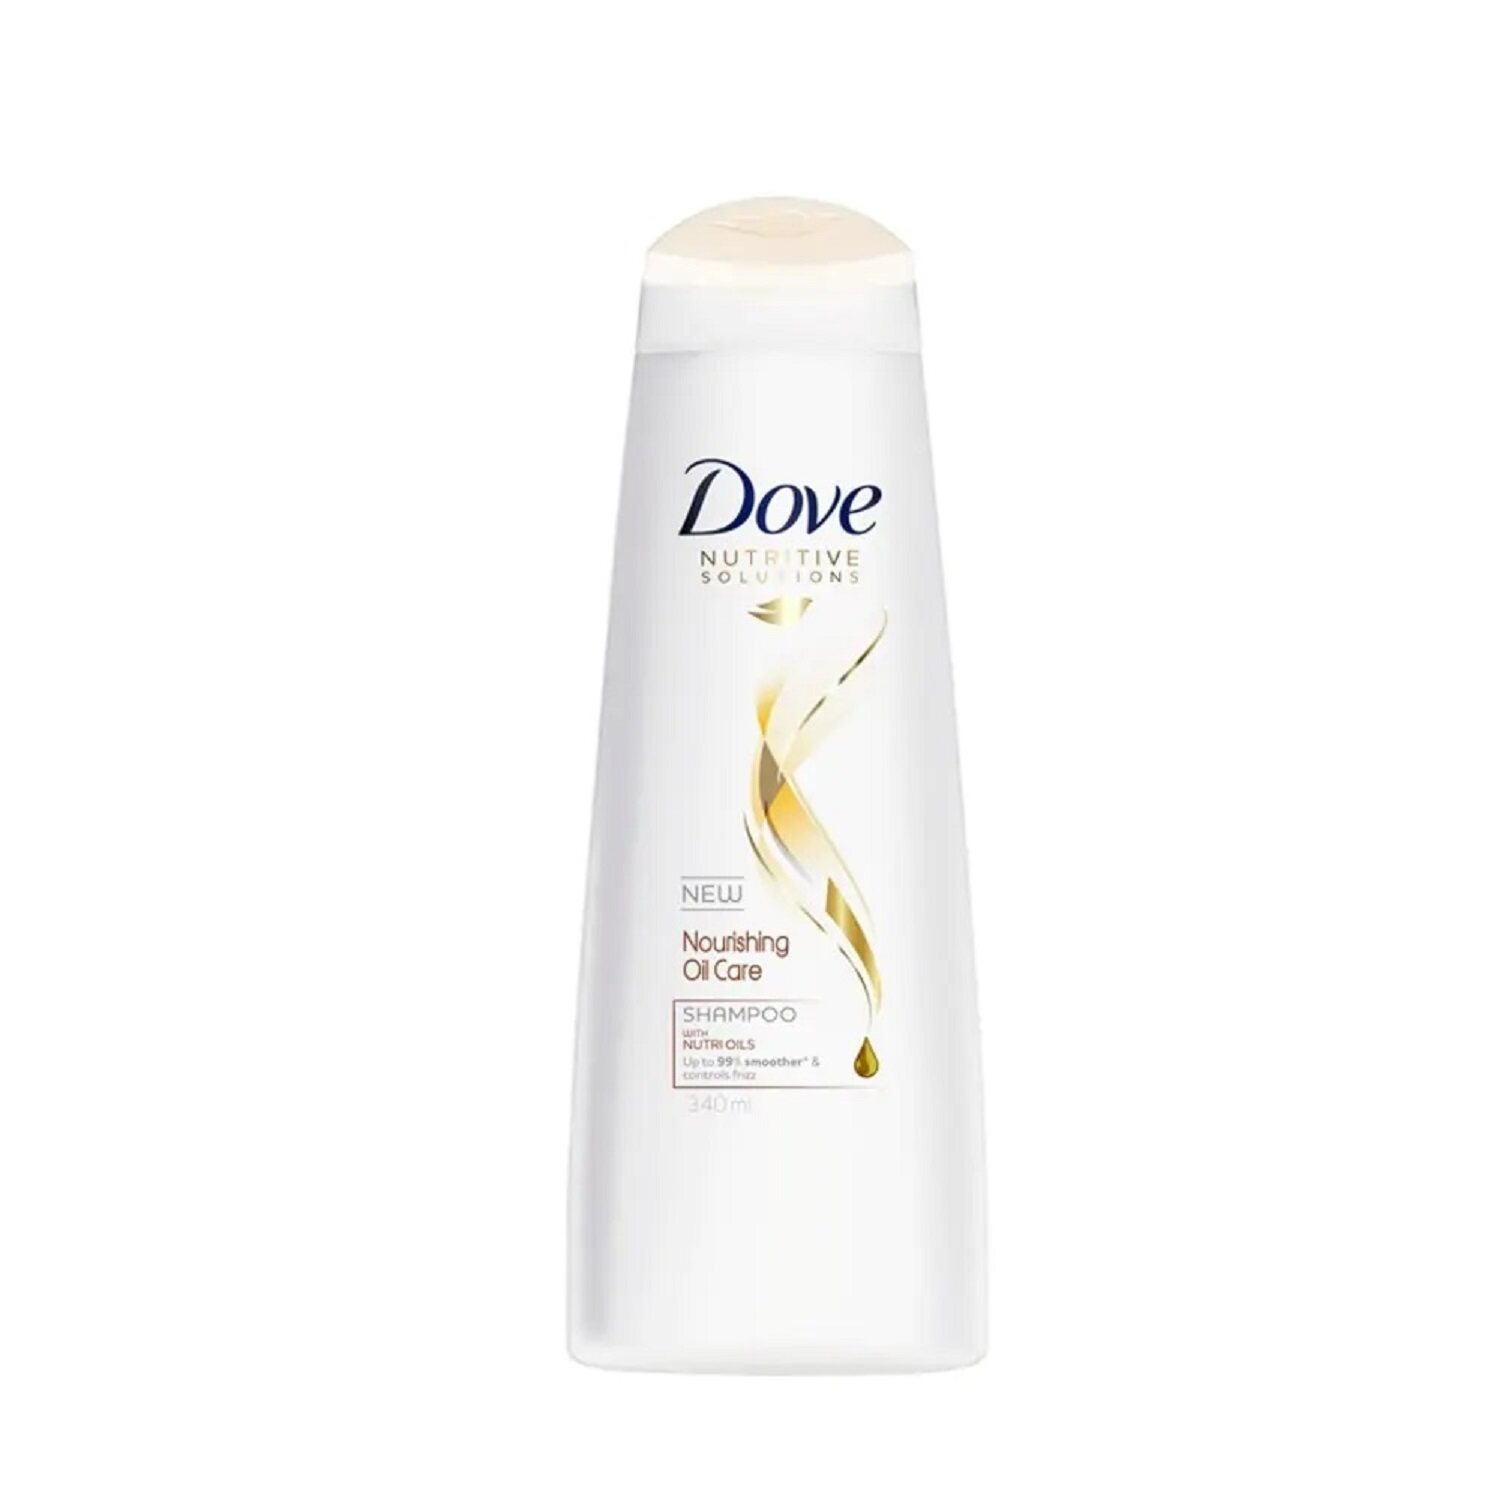 DOVE Nutritive Solutions Shampoo 340ml - Nourishing Oil Care